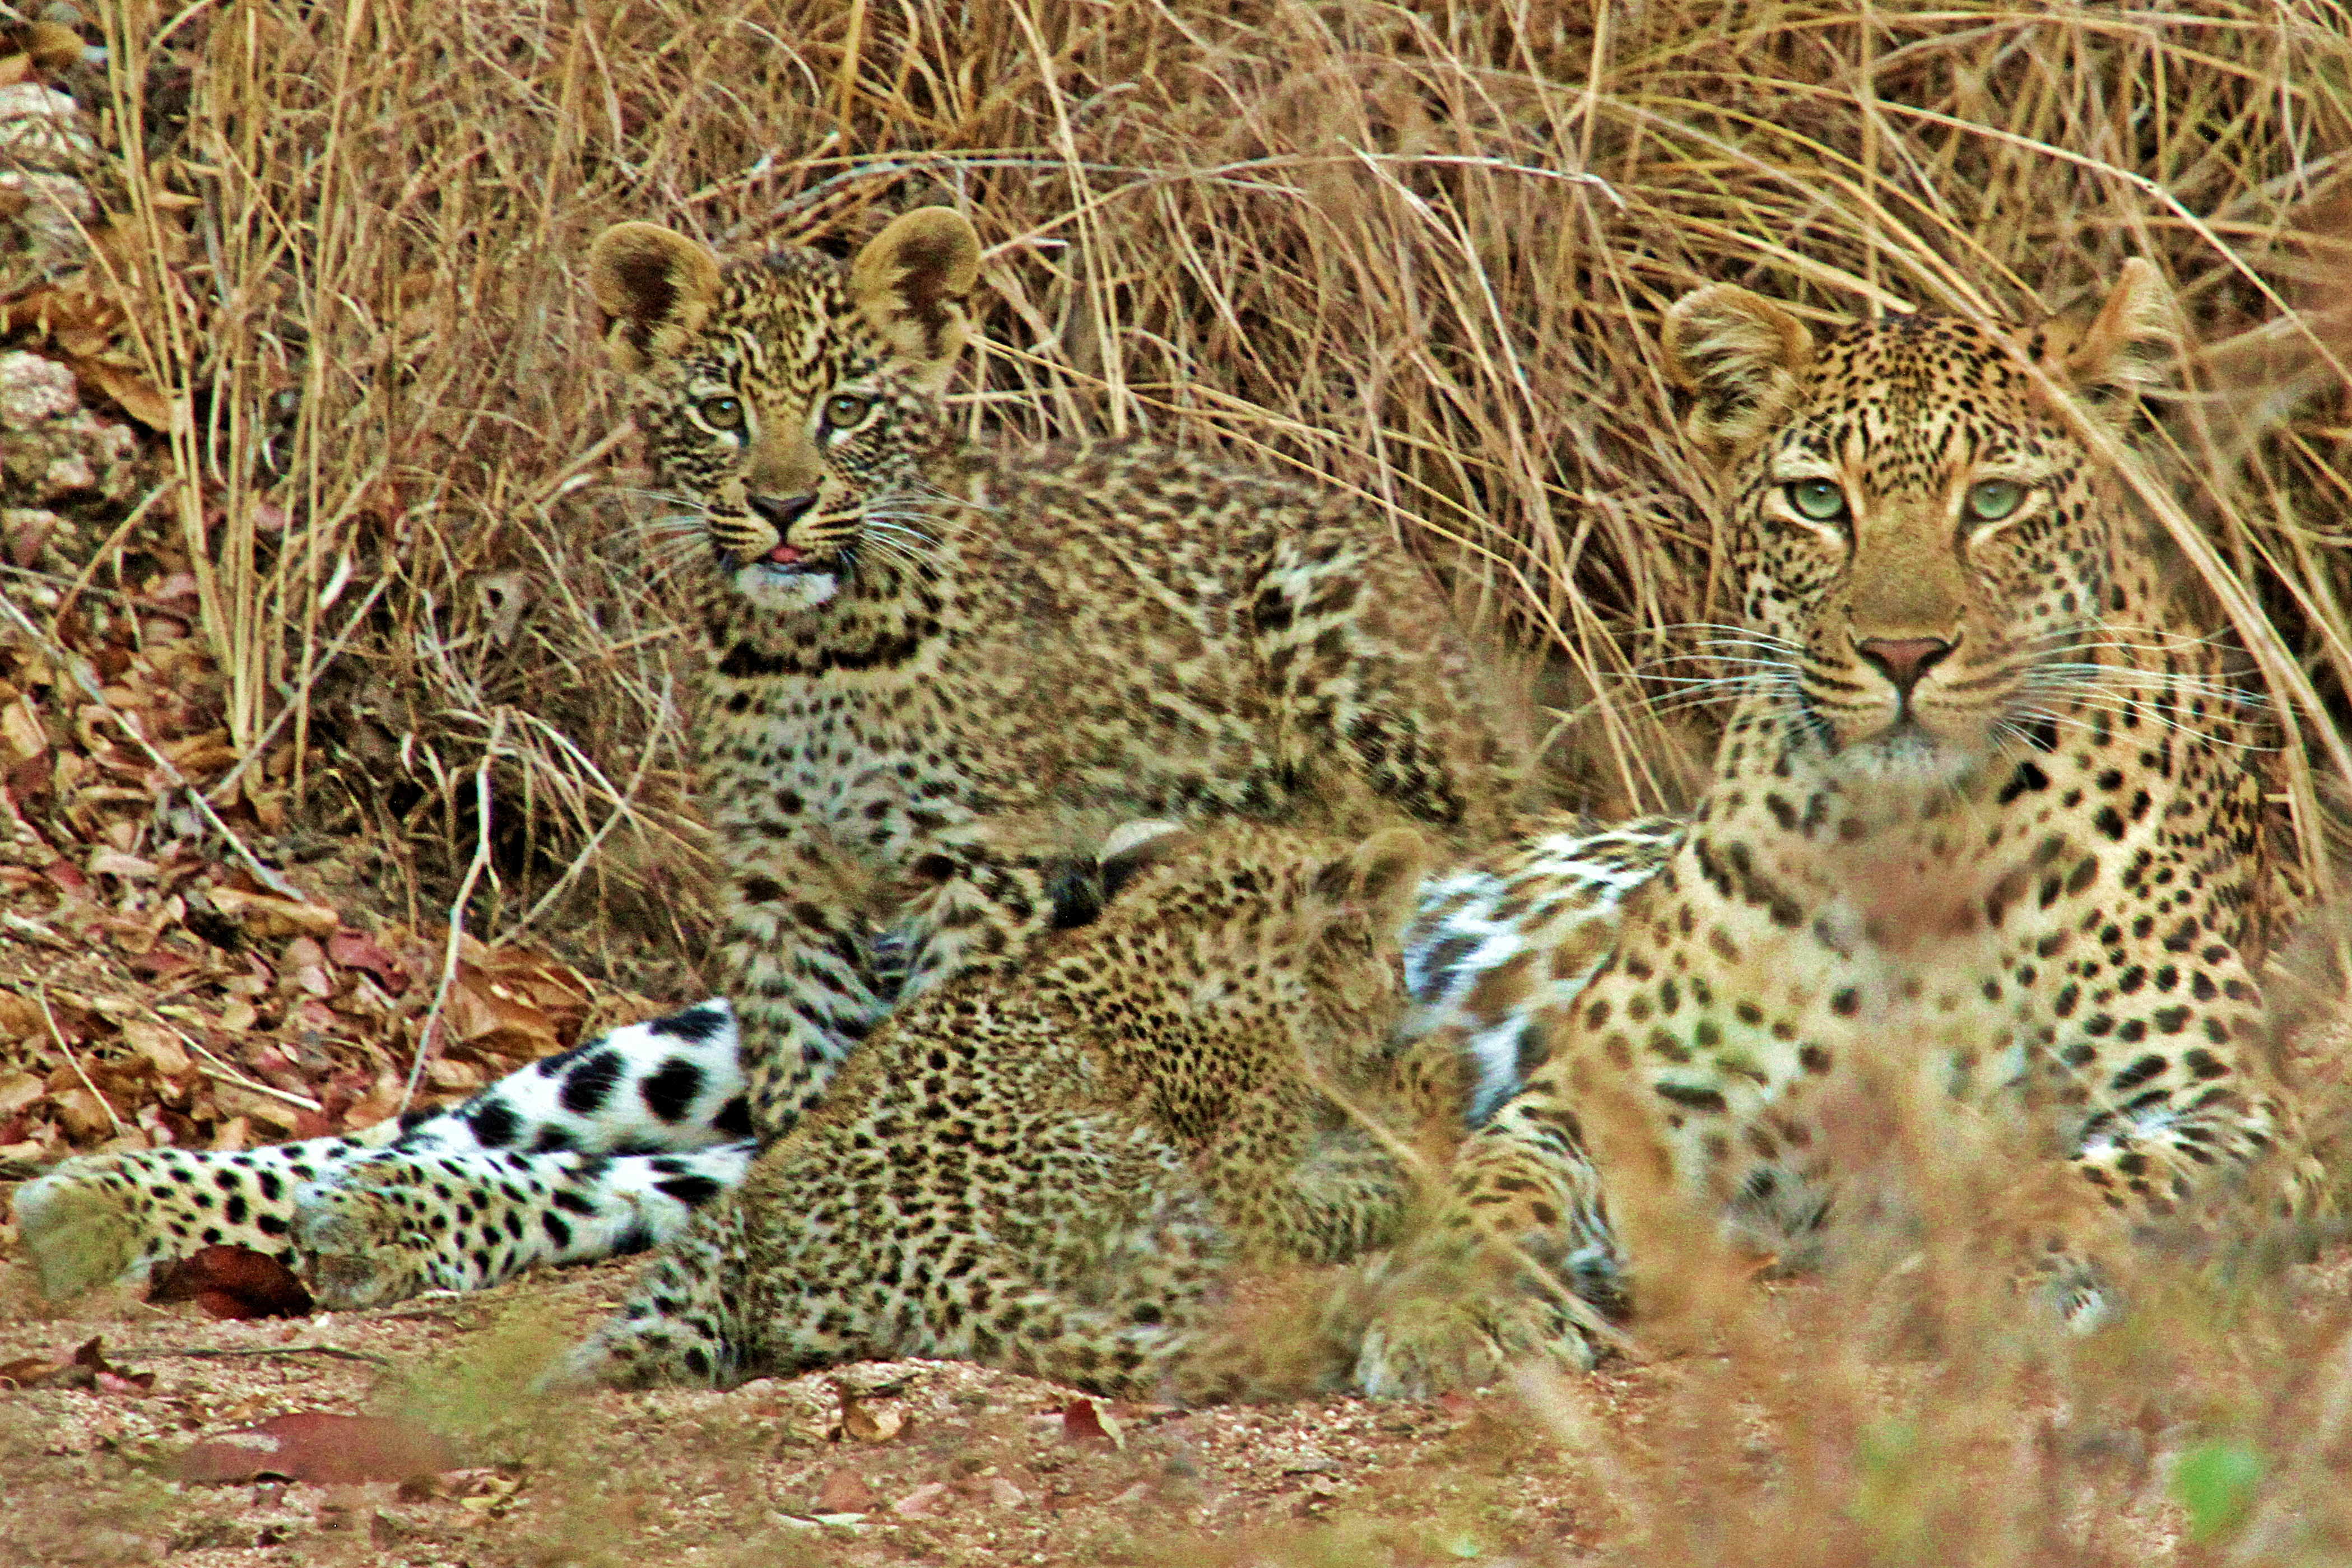 Leopard cubs and mother in the Kruger National Park